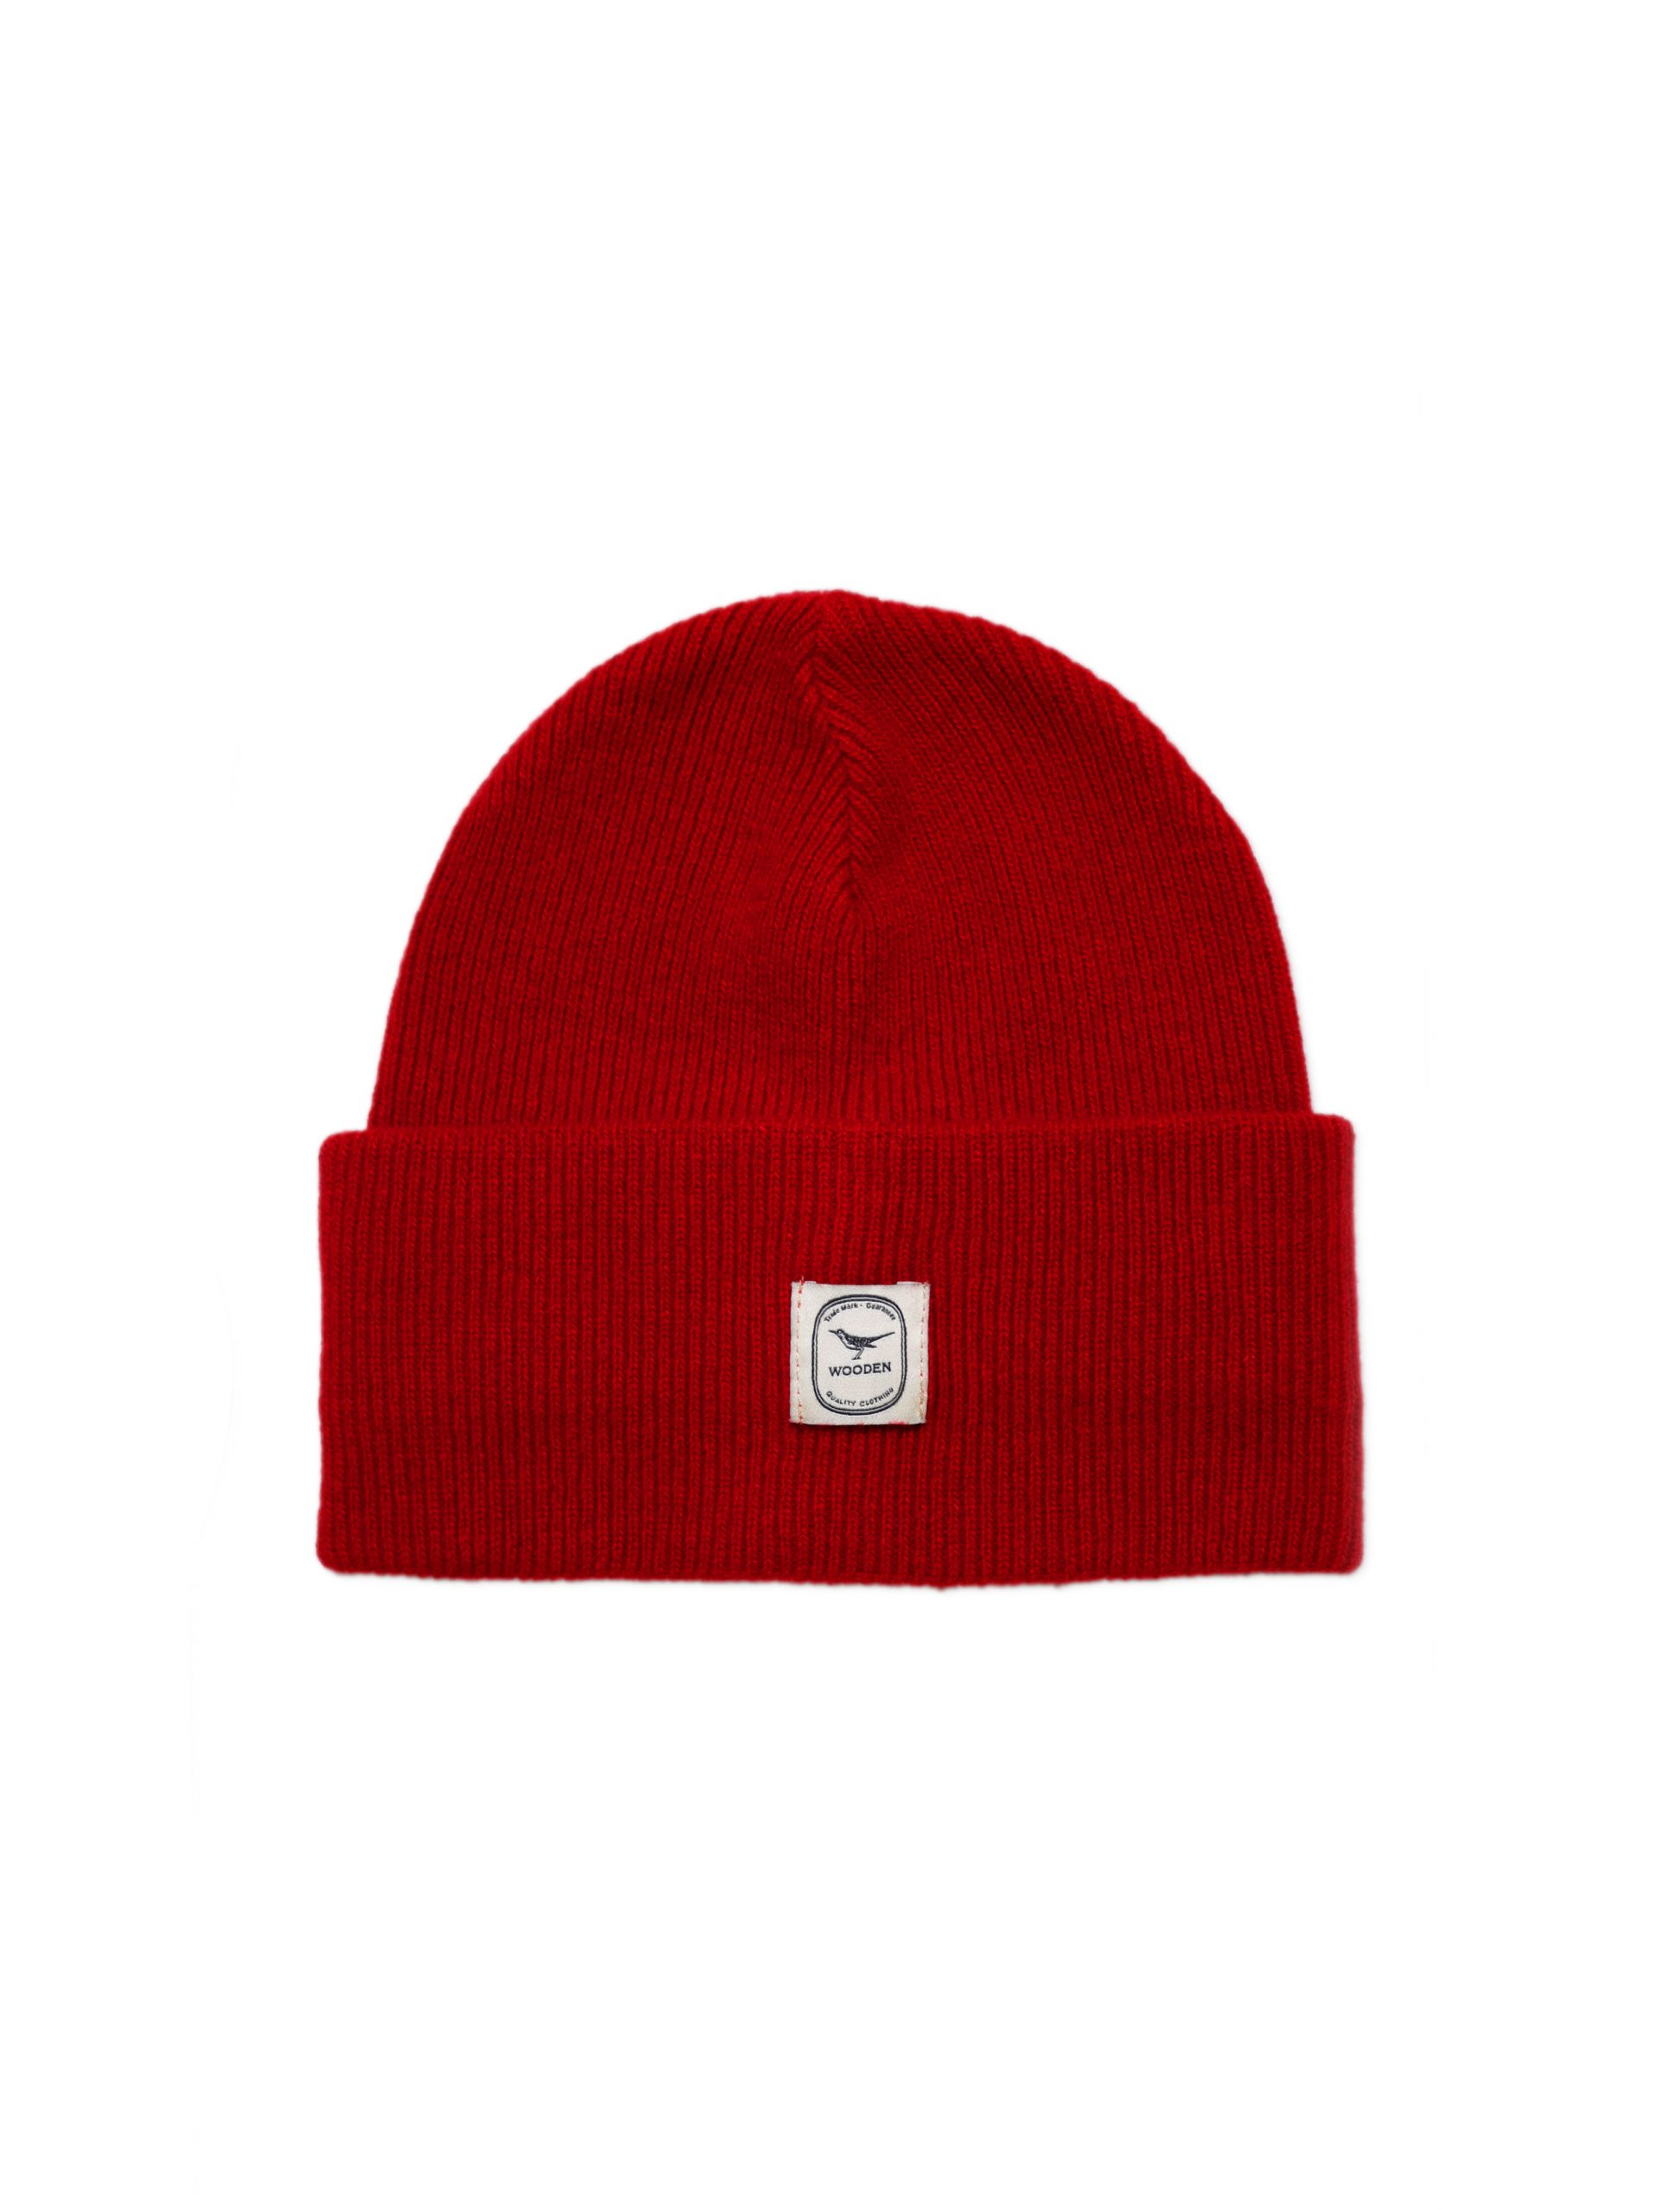 Beanie Rosso | Wooden Store